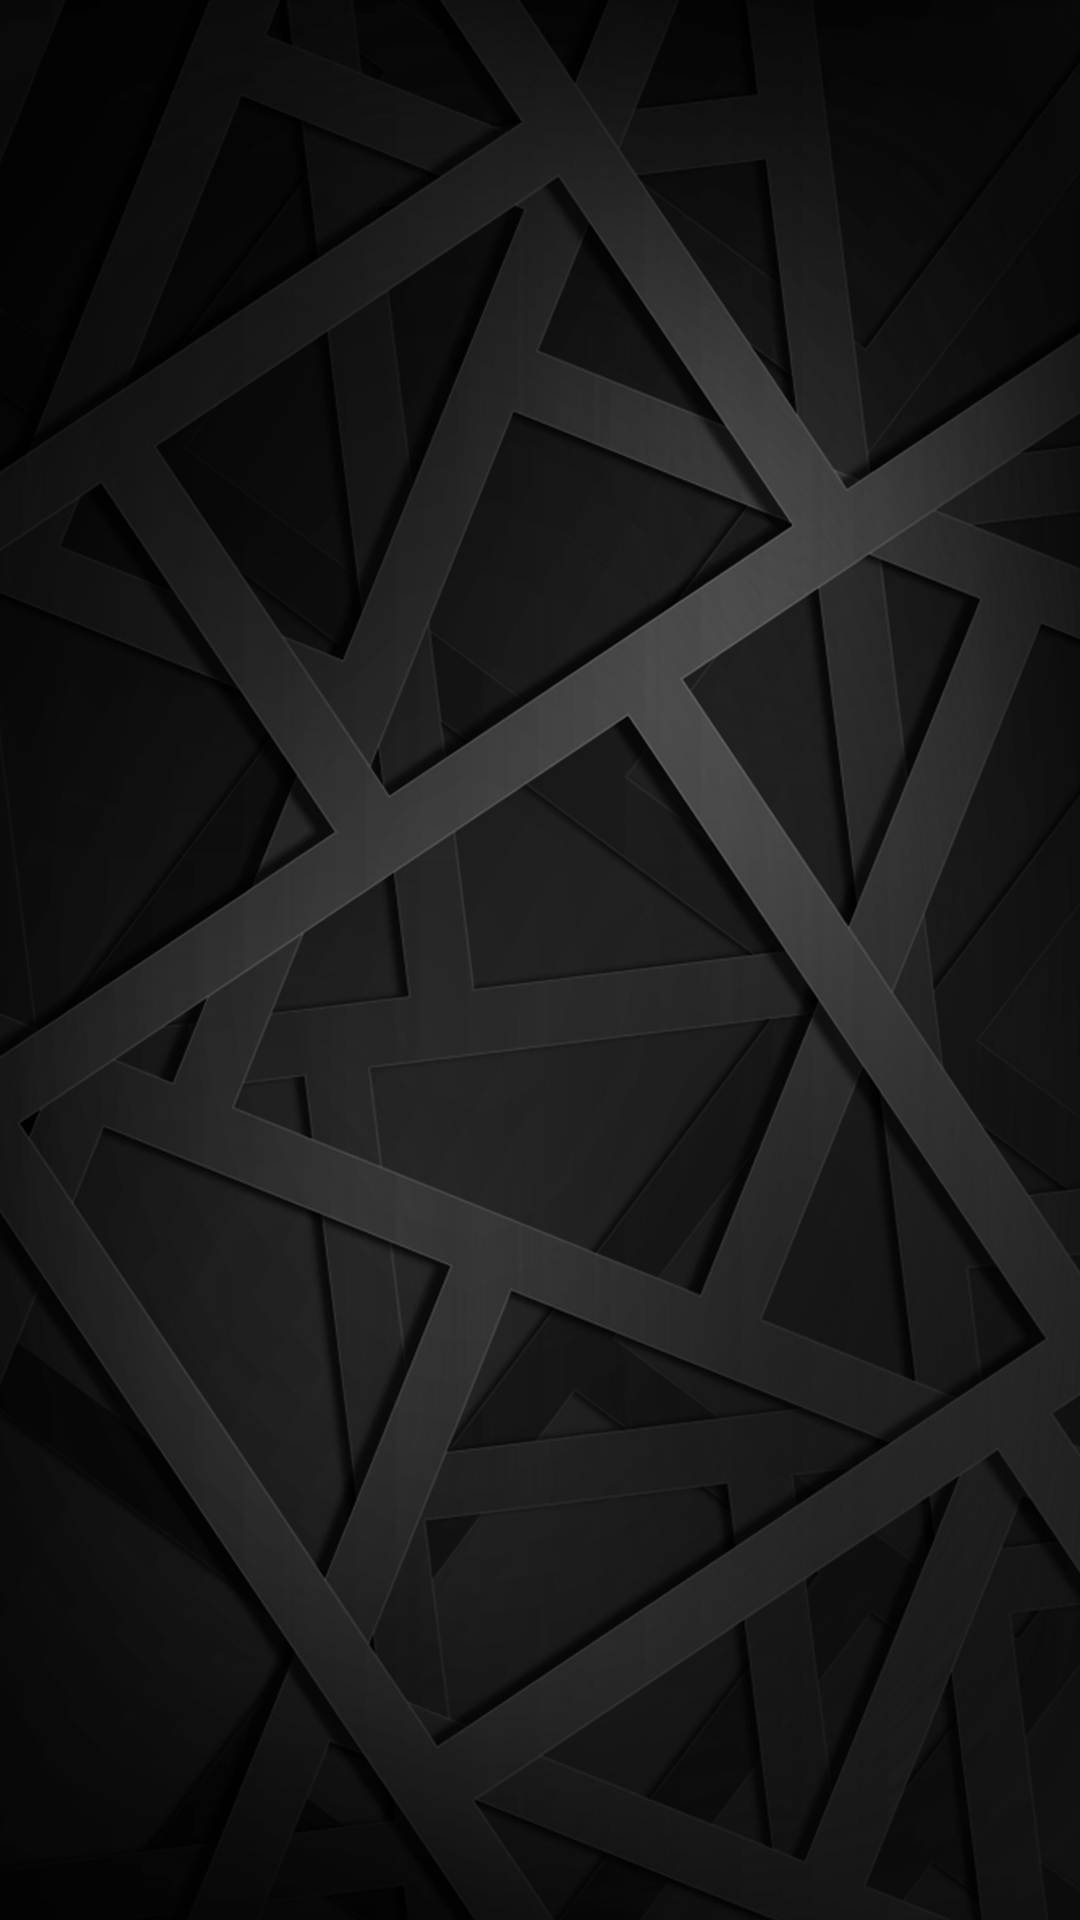 30 Black Geometric Wallpapers On Wallpapersafari